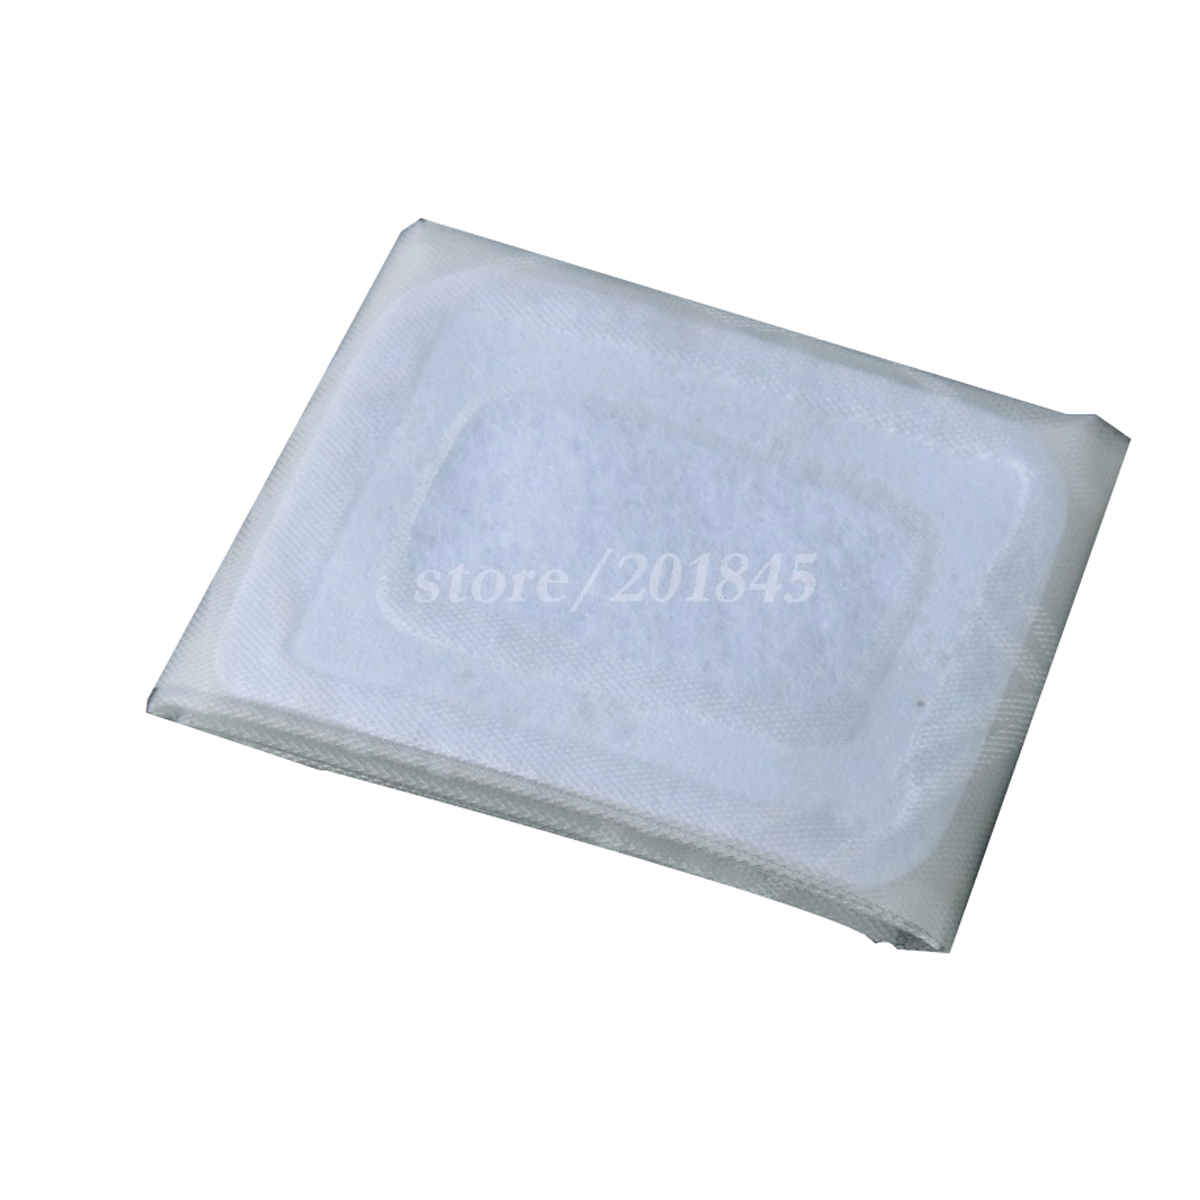 Free Shipping 50Pcs Emergency CPR Face Shield Barrier Pocket CPR Mask One Valve Mouth To Mouth Protect For First Aid Training free shipping 50pcs mje15033g 50pcs mje15032g mje15033 mje15032 to 220